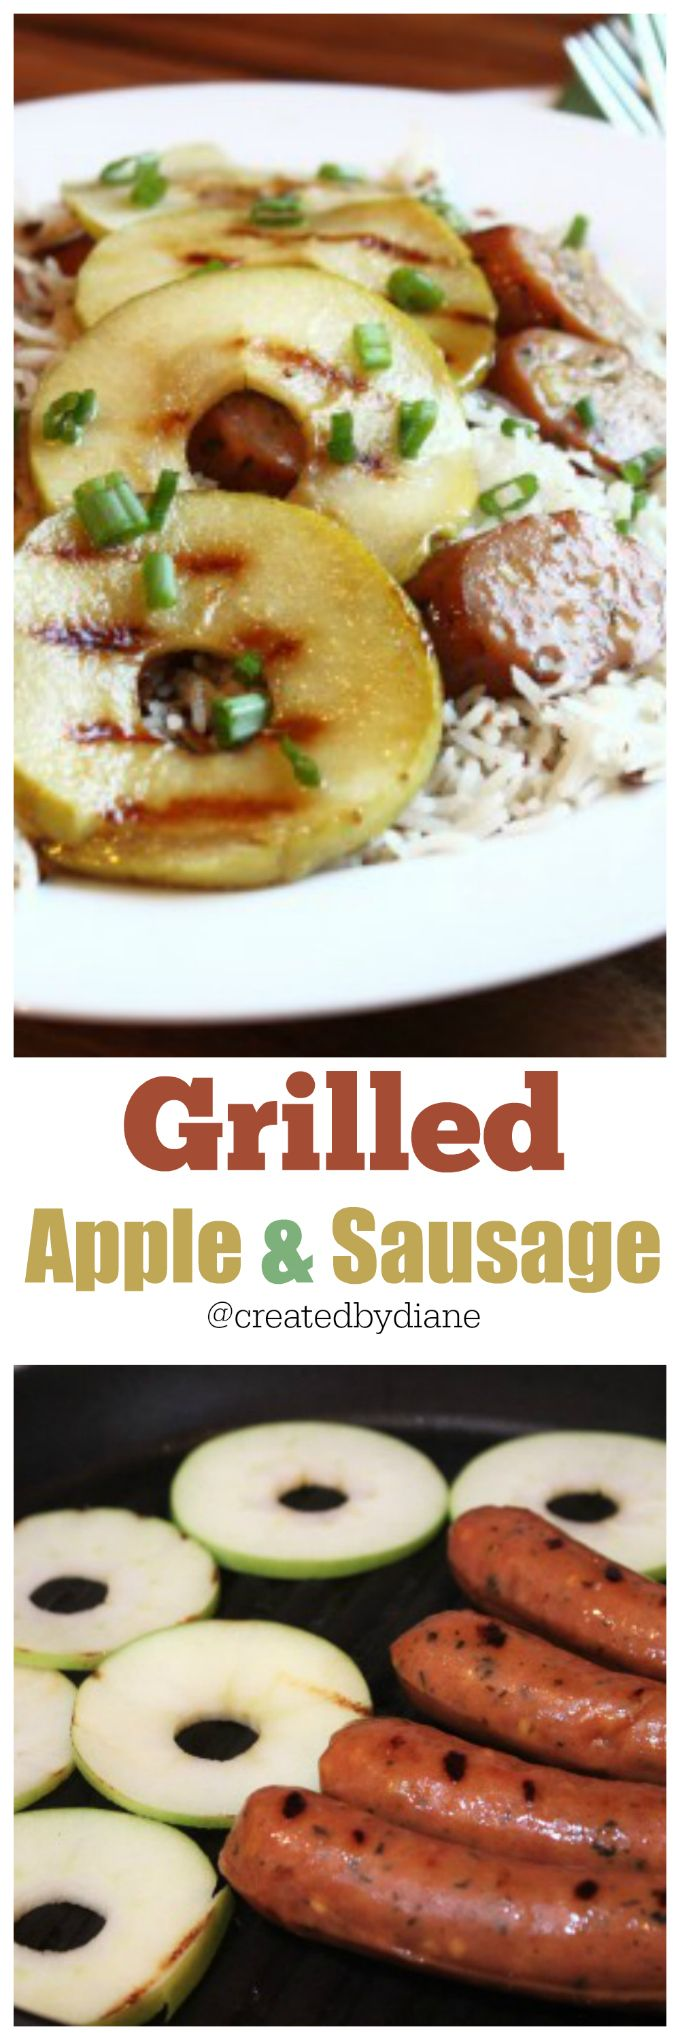 grilled apple and sausage @createdbydiane